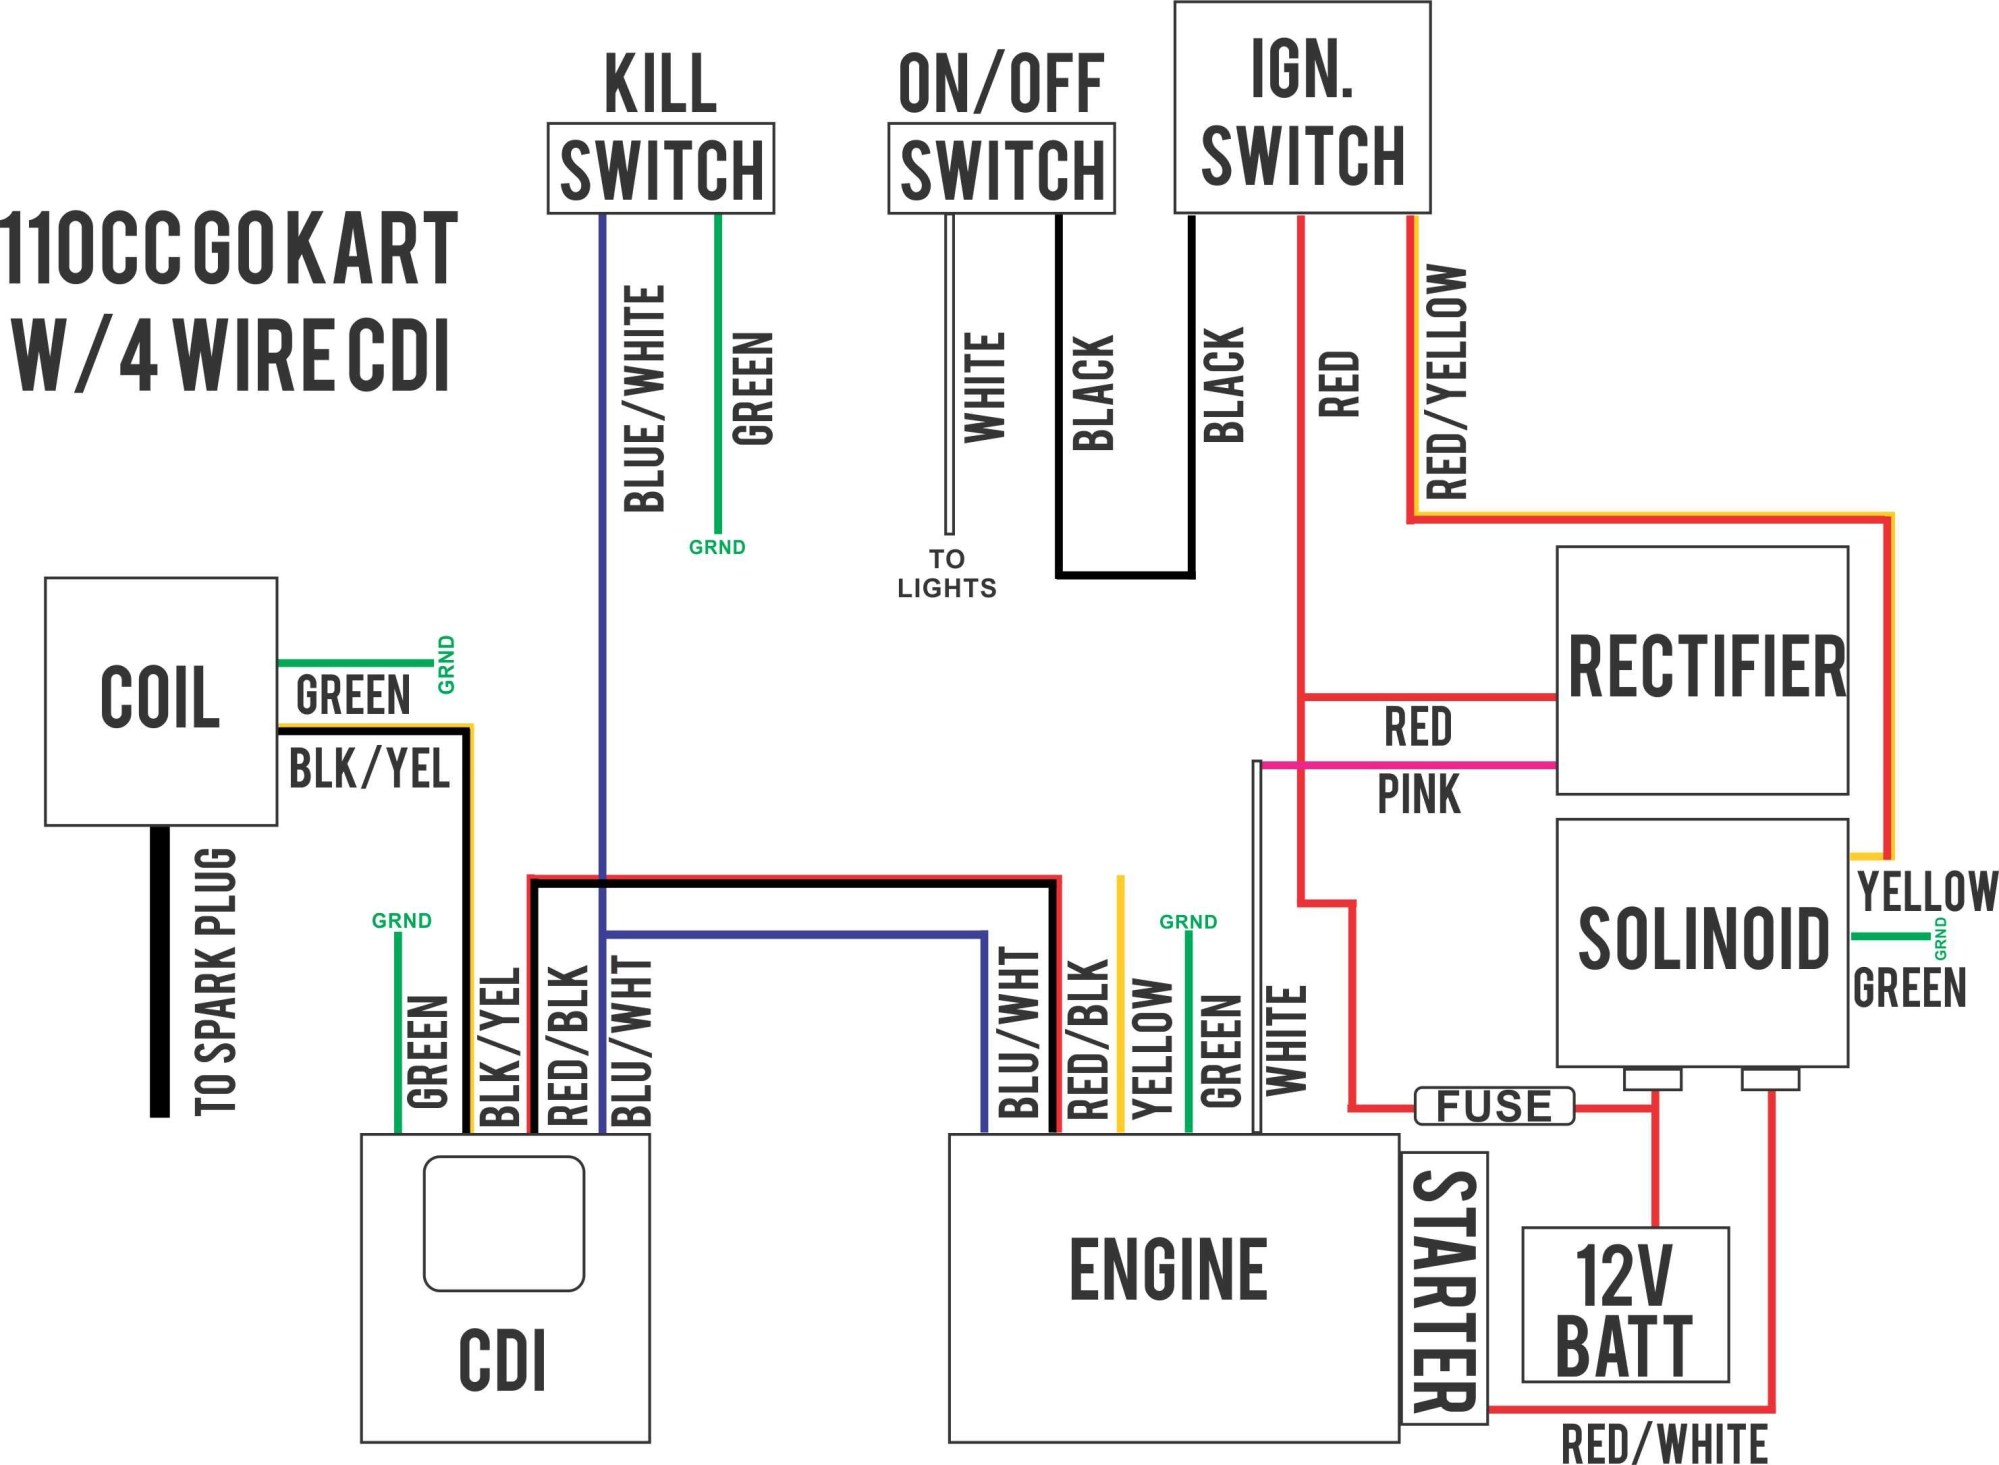 hight resolution of atv wiring schematic wiring diagram expert 110cc wiring schematic manual e book yamaha atv wiring schematics